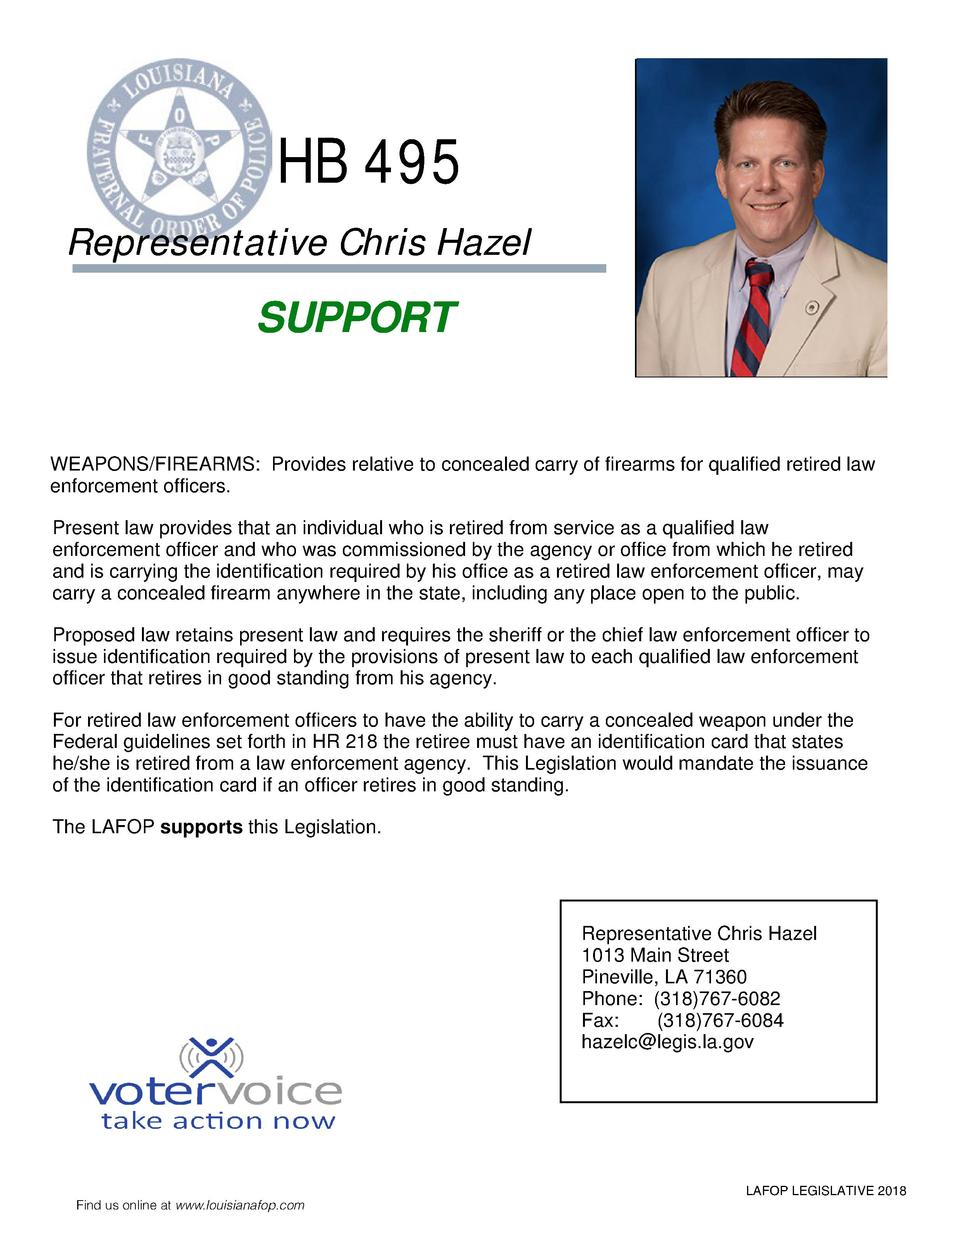 HB 495 Representative Chris Hazel  SUPPORT  WEAPONS FIREARMS  Provides relative to concealed carry of firearms for qualifi...